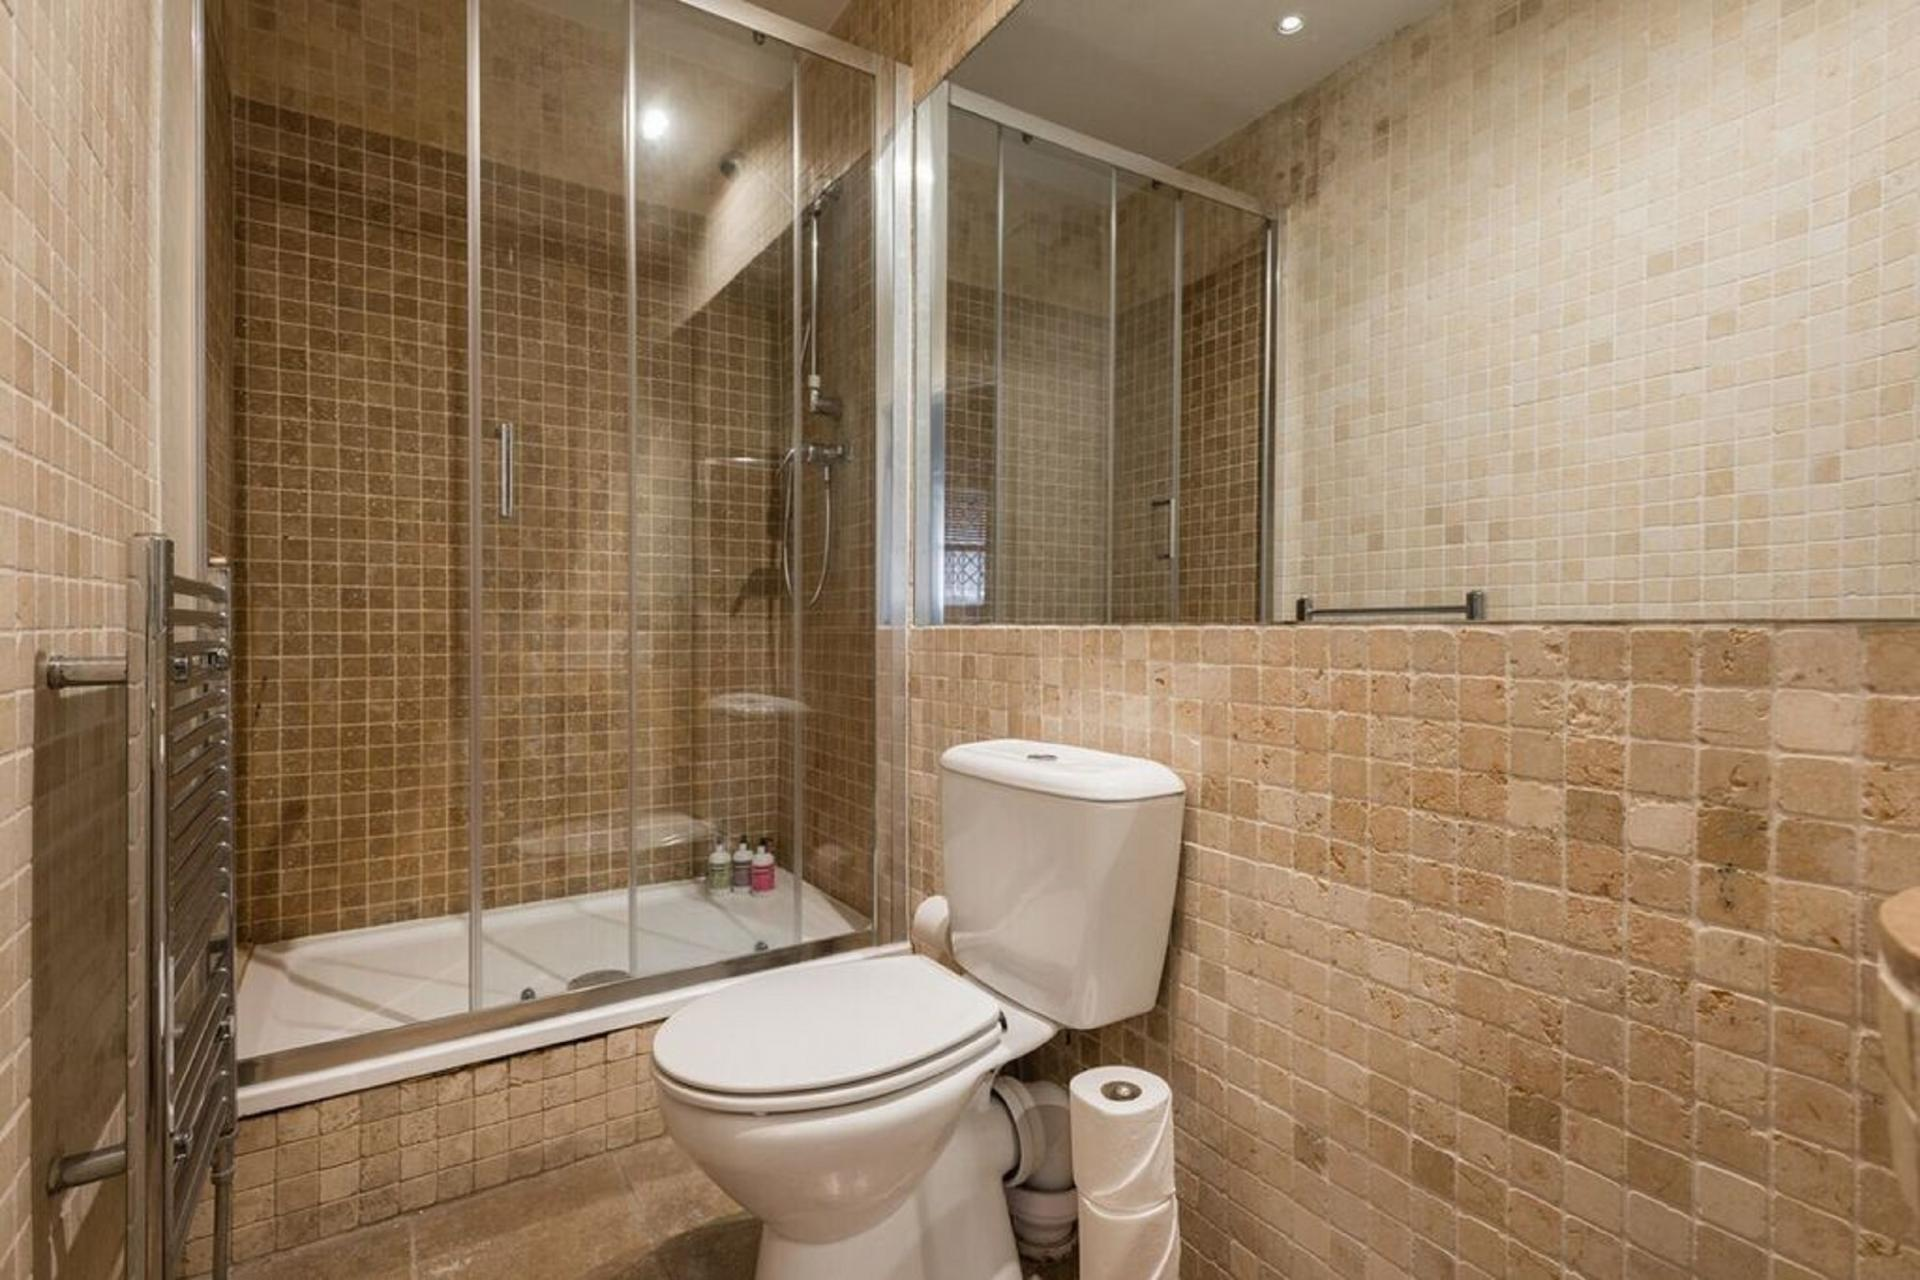 Bathroom at The Bayswater Gardens House, Bayswater, London - Citybase Apartments